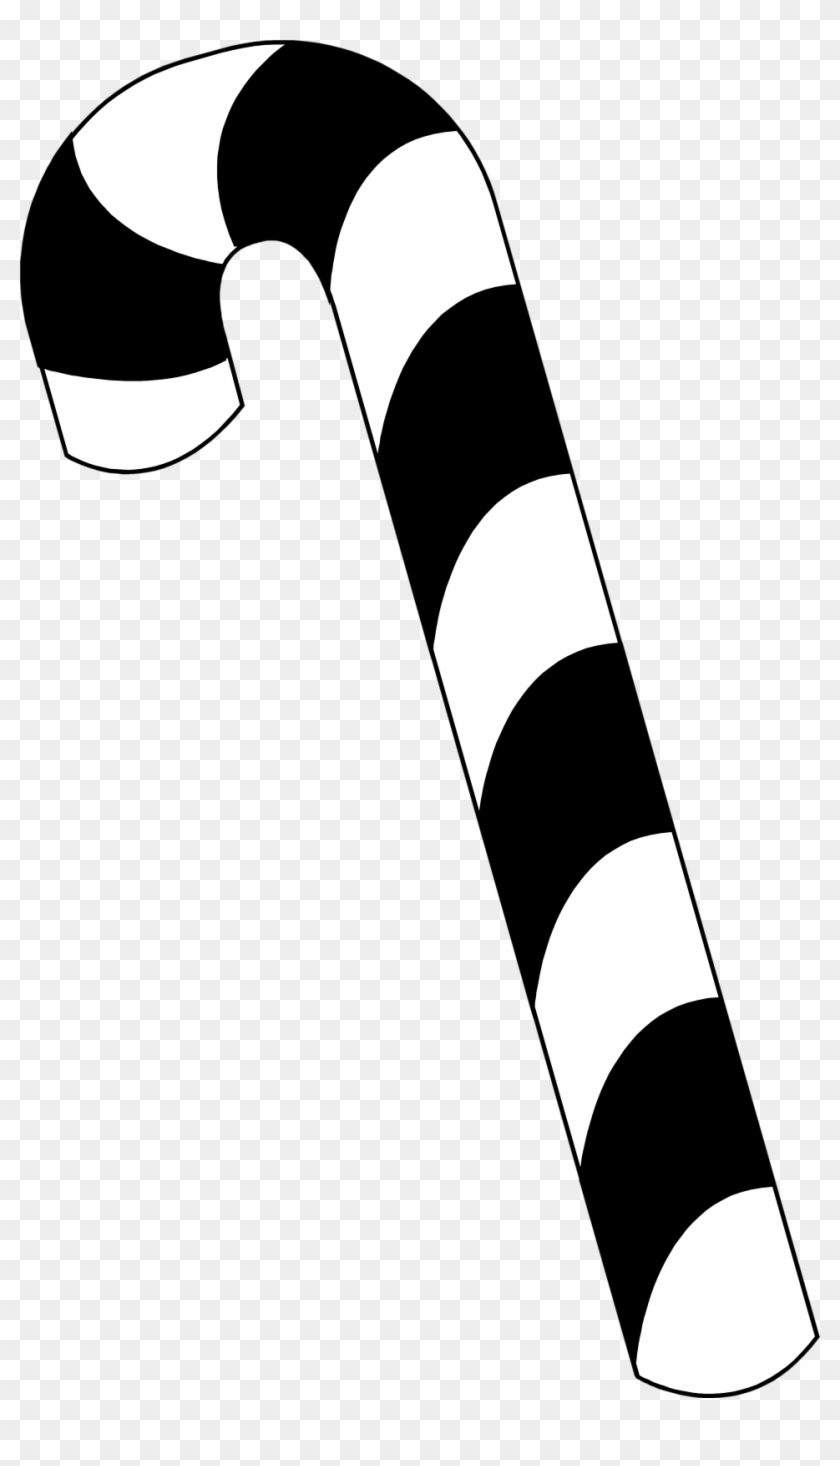 hight resolution of candy cane clipart black and white candy cane black and white